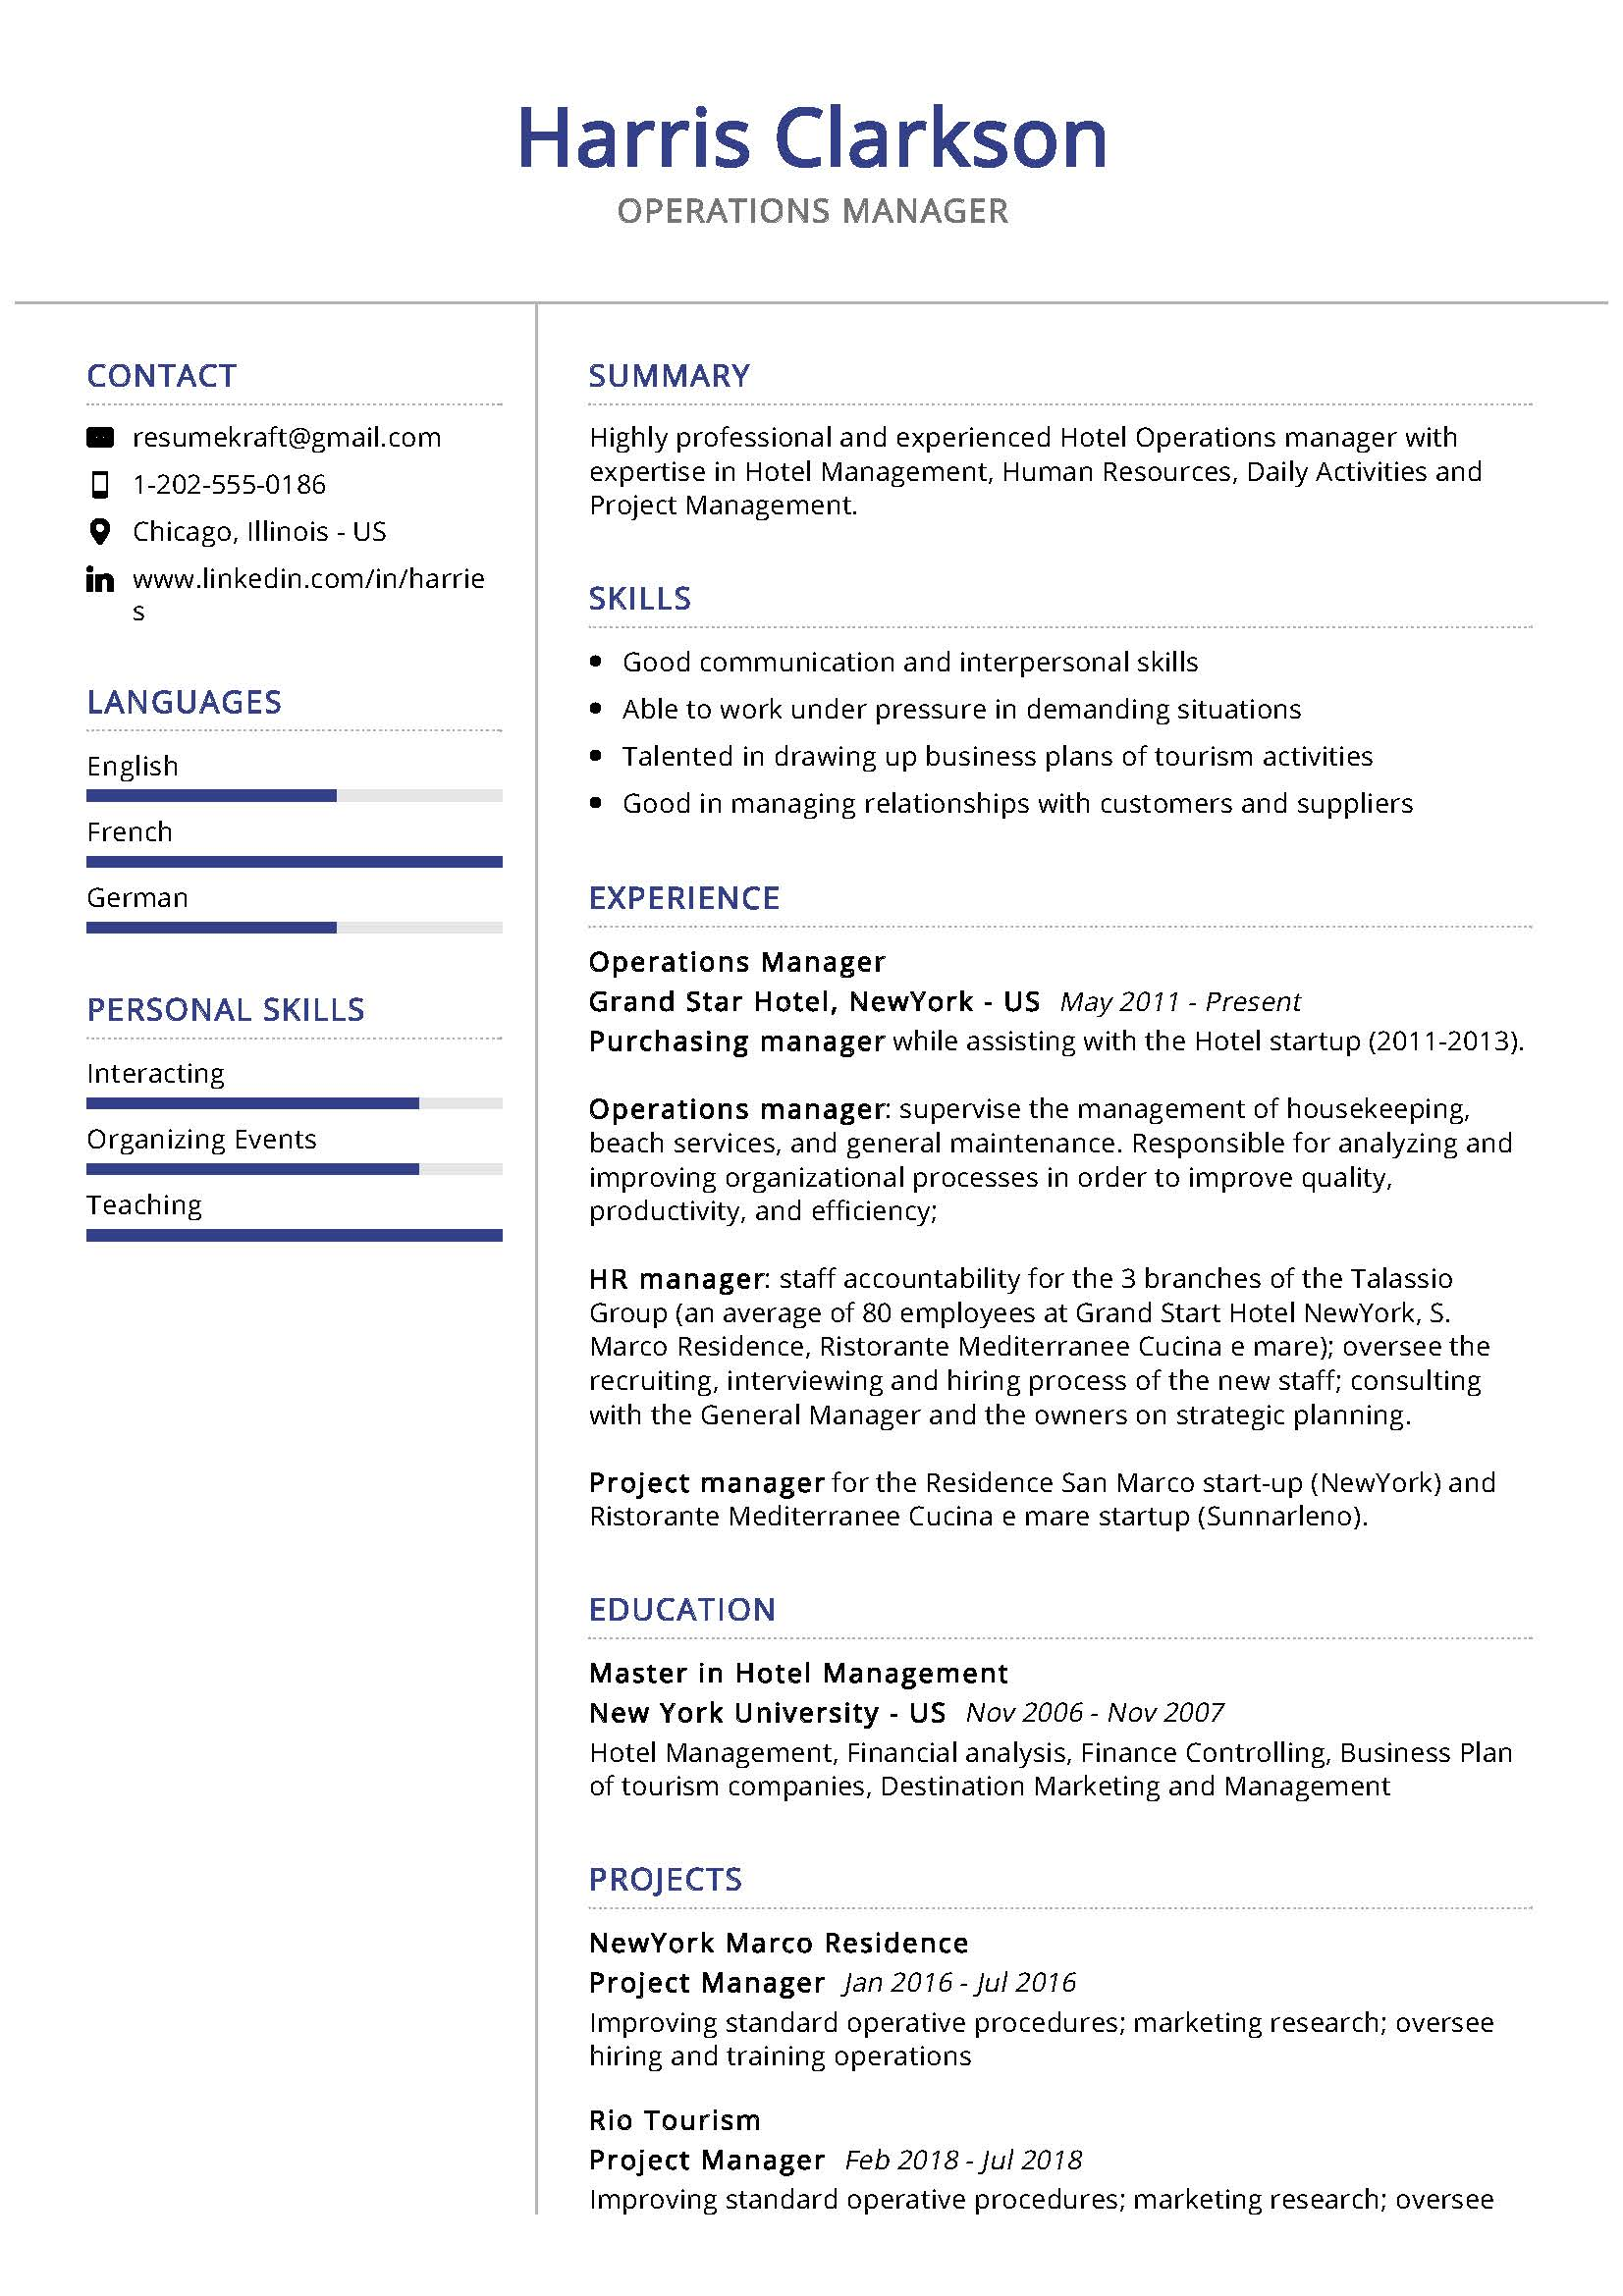 operations manager resume sample writing tips resumekraft project examples assessment Resume Project Manager Resume Examples 2020